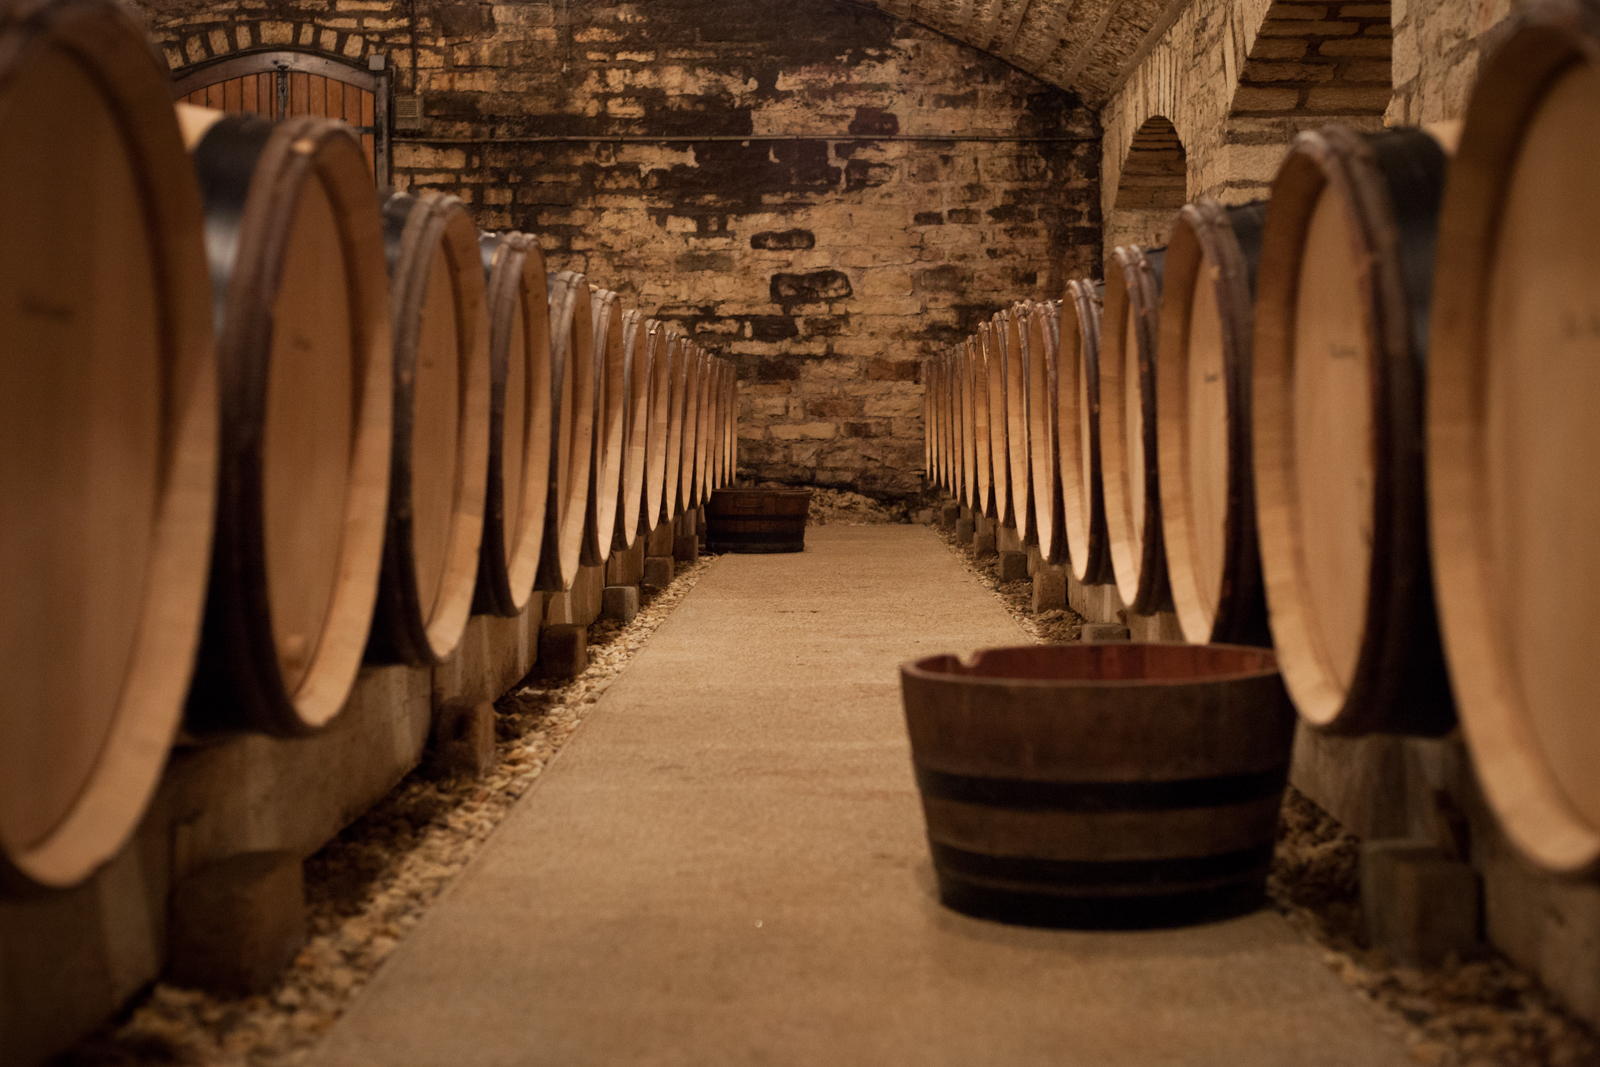 Unfathomable riches lie within these barrels: the 2016 vintage of Echézeaux, Grands Echézeaux and Corton. ©Kevin Day / Opening a Bottle